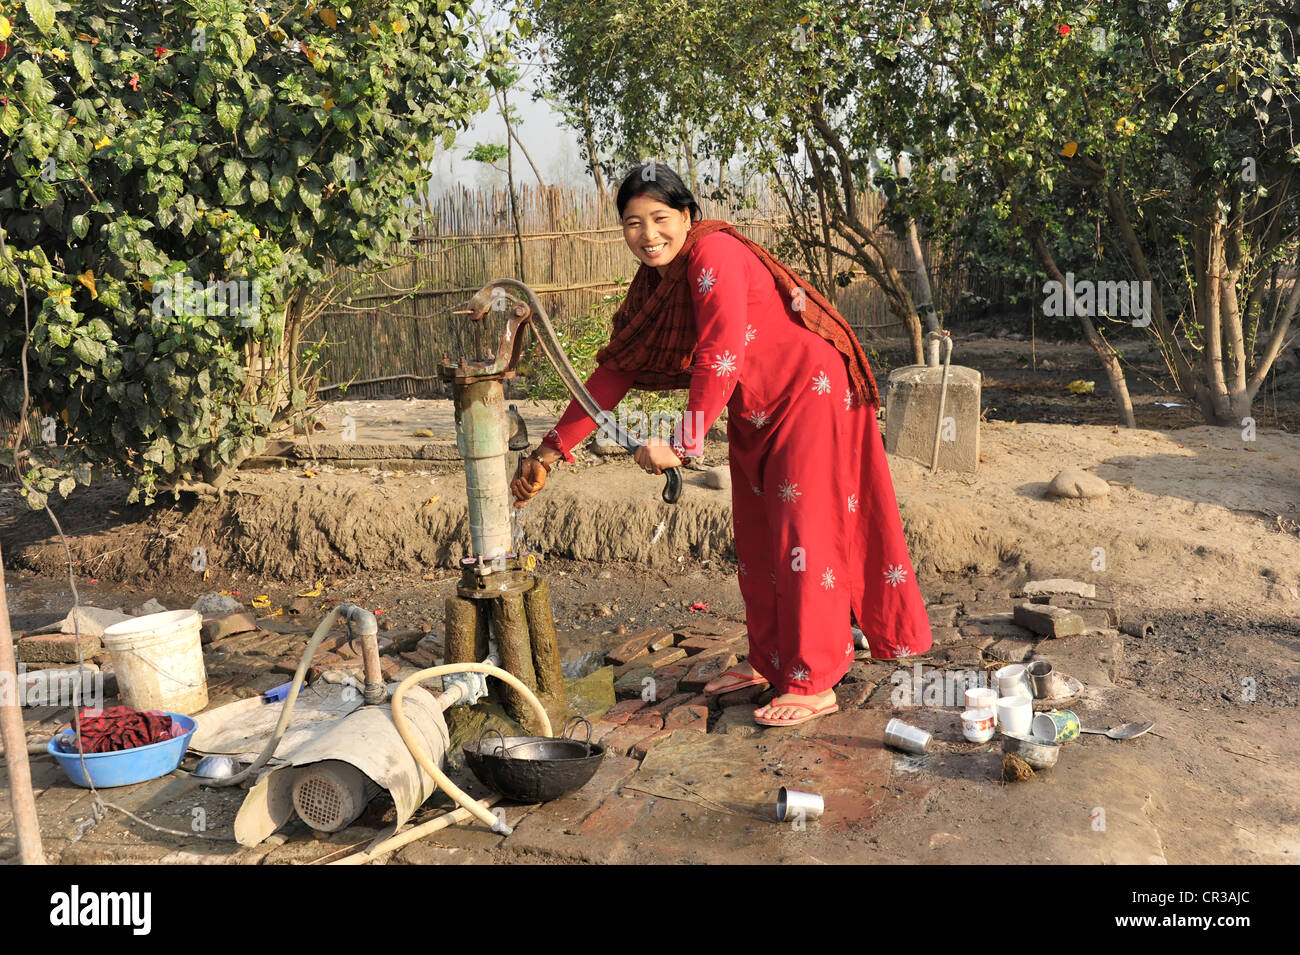 Smiling Nepalese Hindu woman getting water, near Pokhara, Kathmandu, Nepal, South Asia - Stock Image